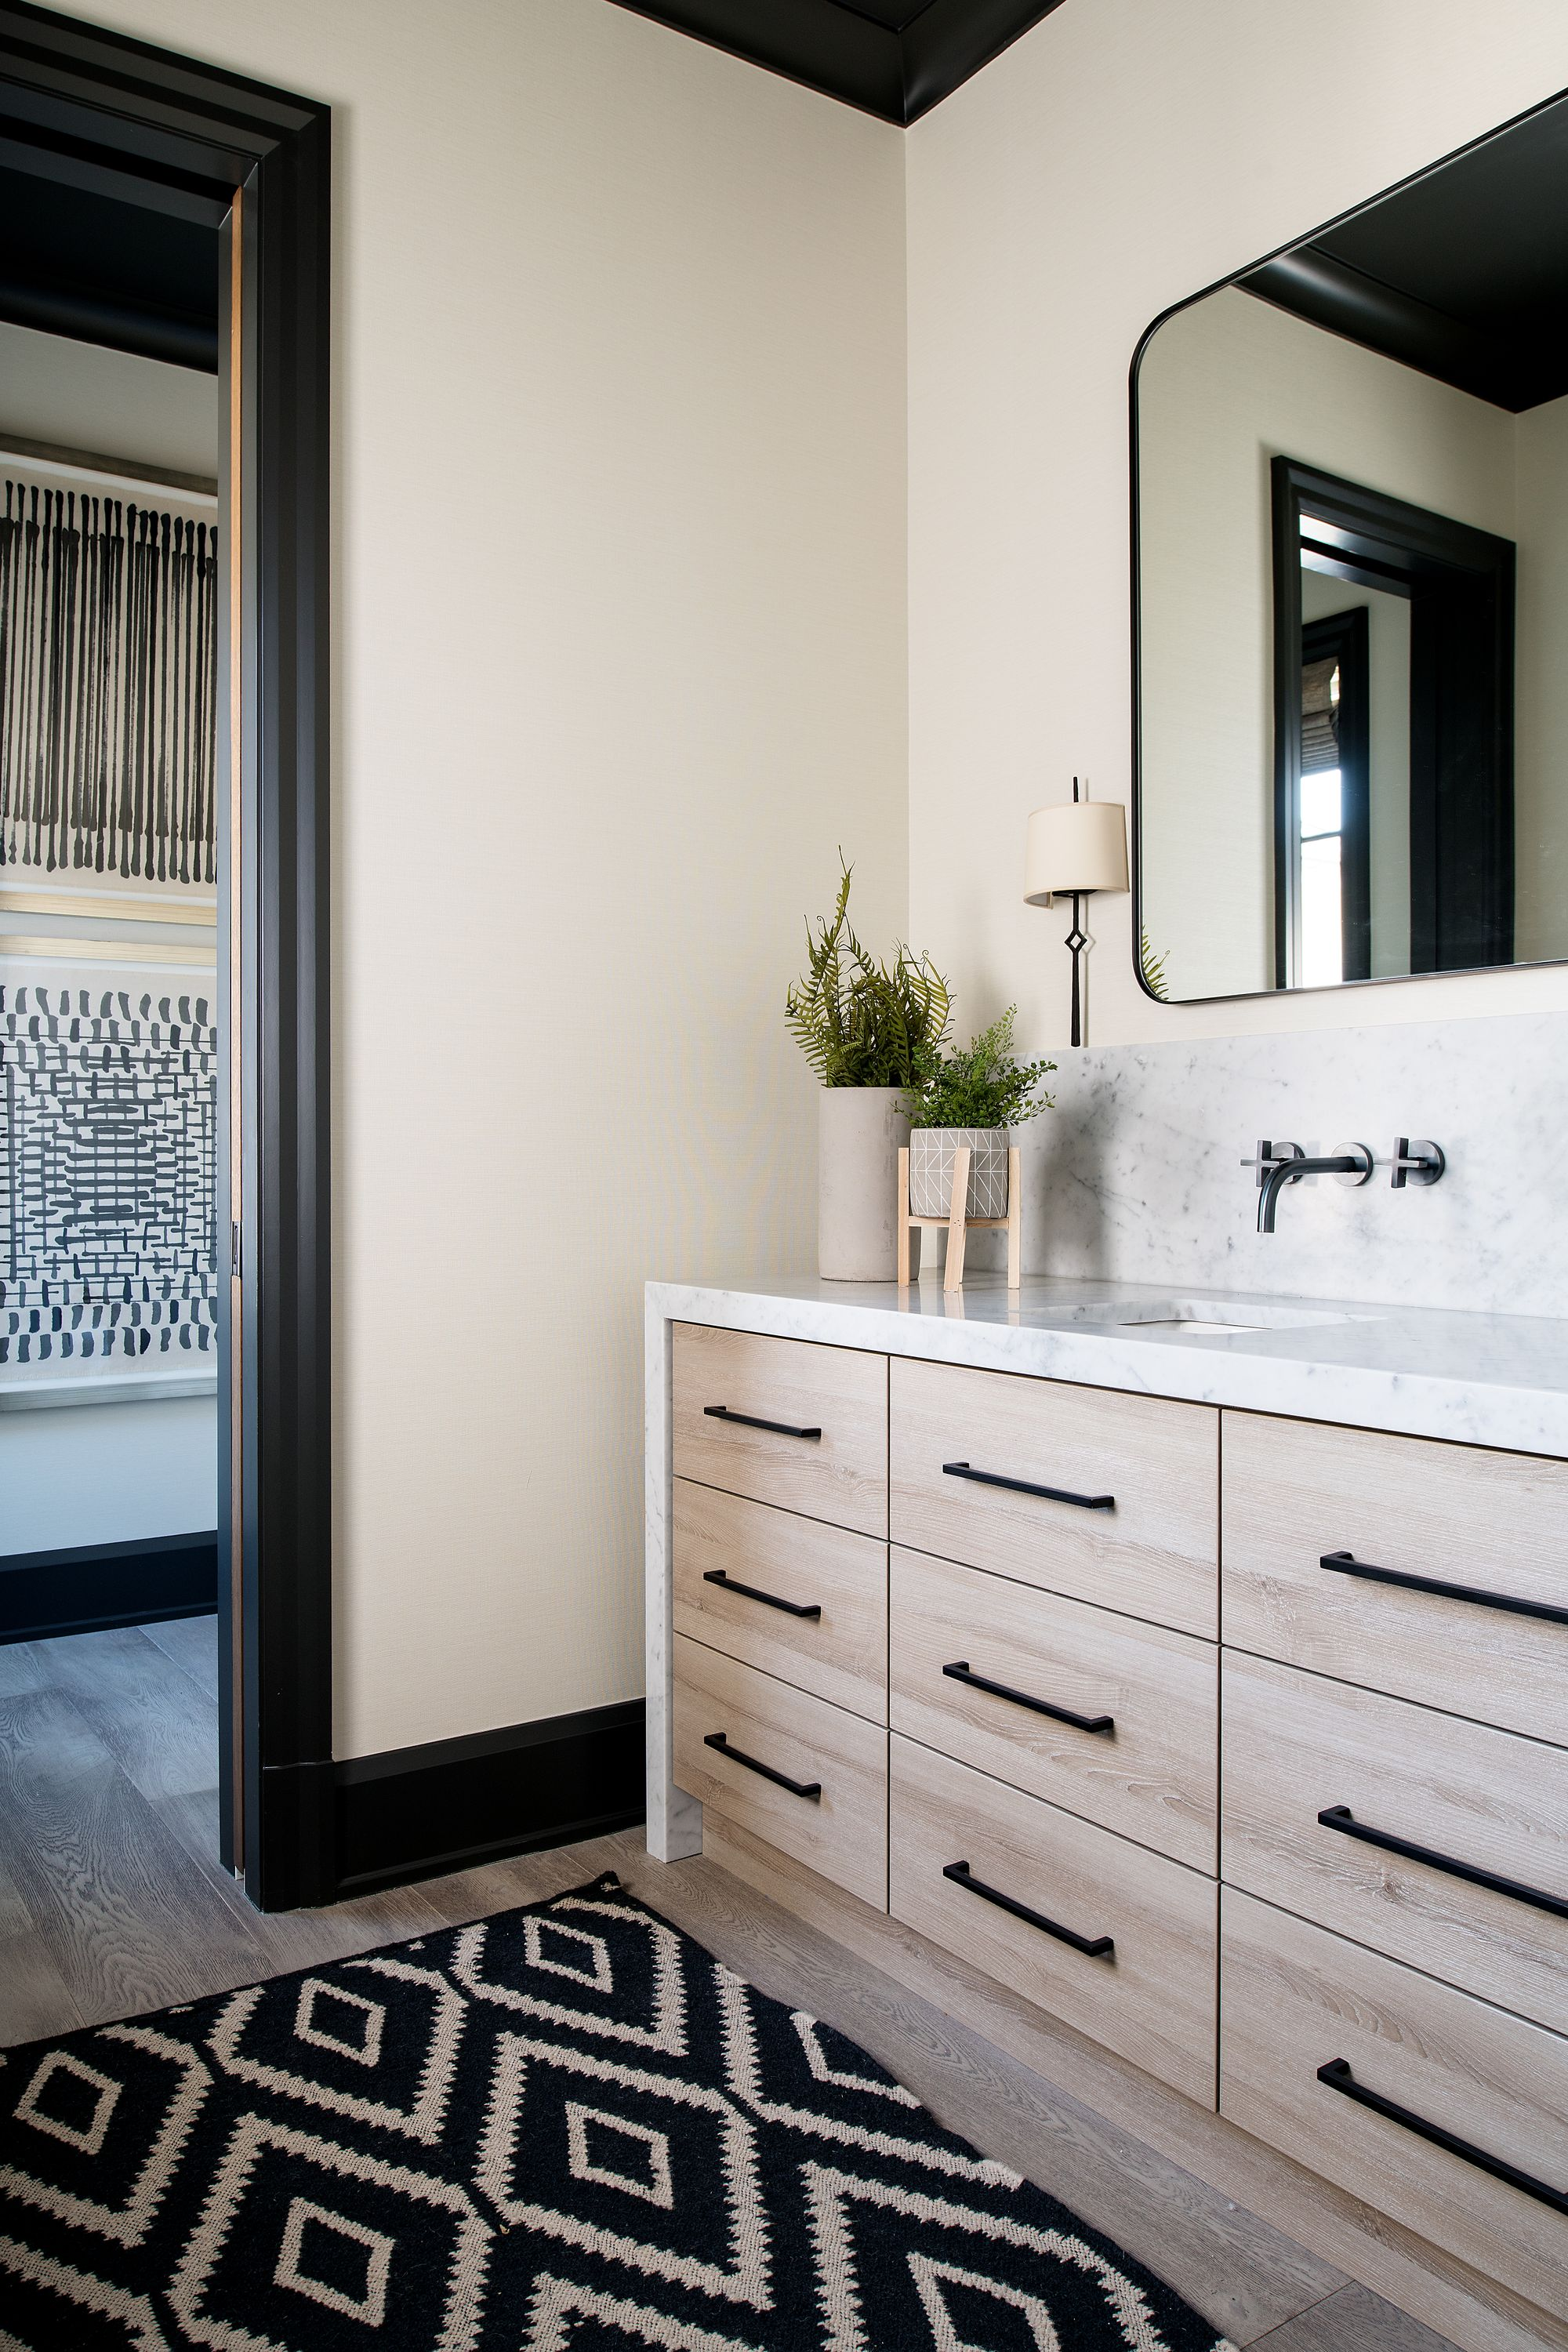 Lot 6 Powder Room.jpg